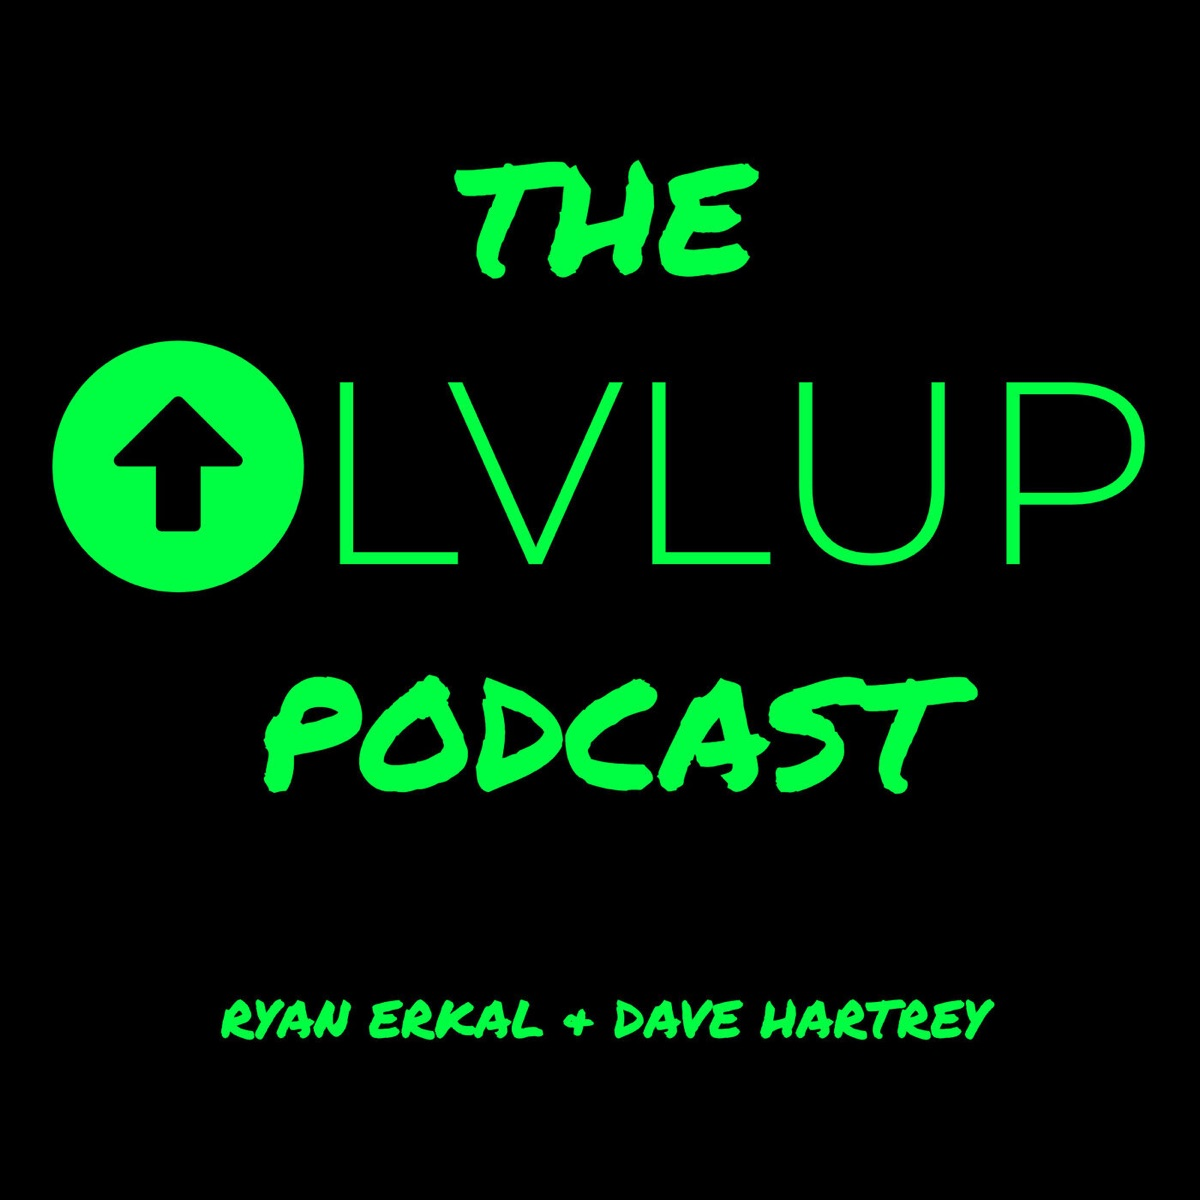 The LVLUP Podcast